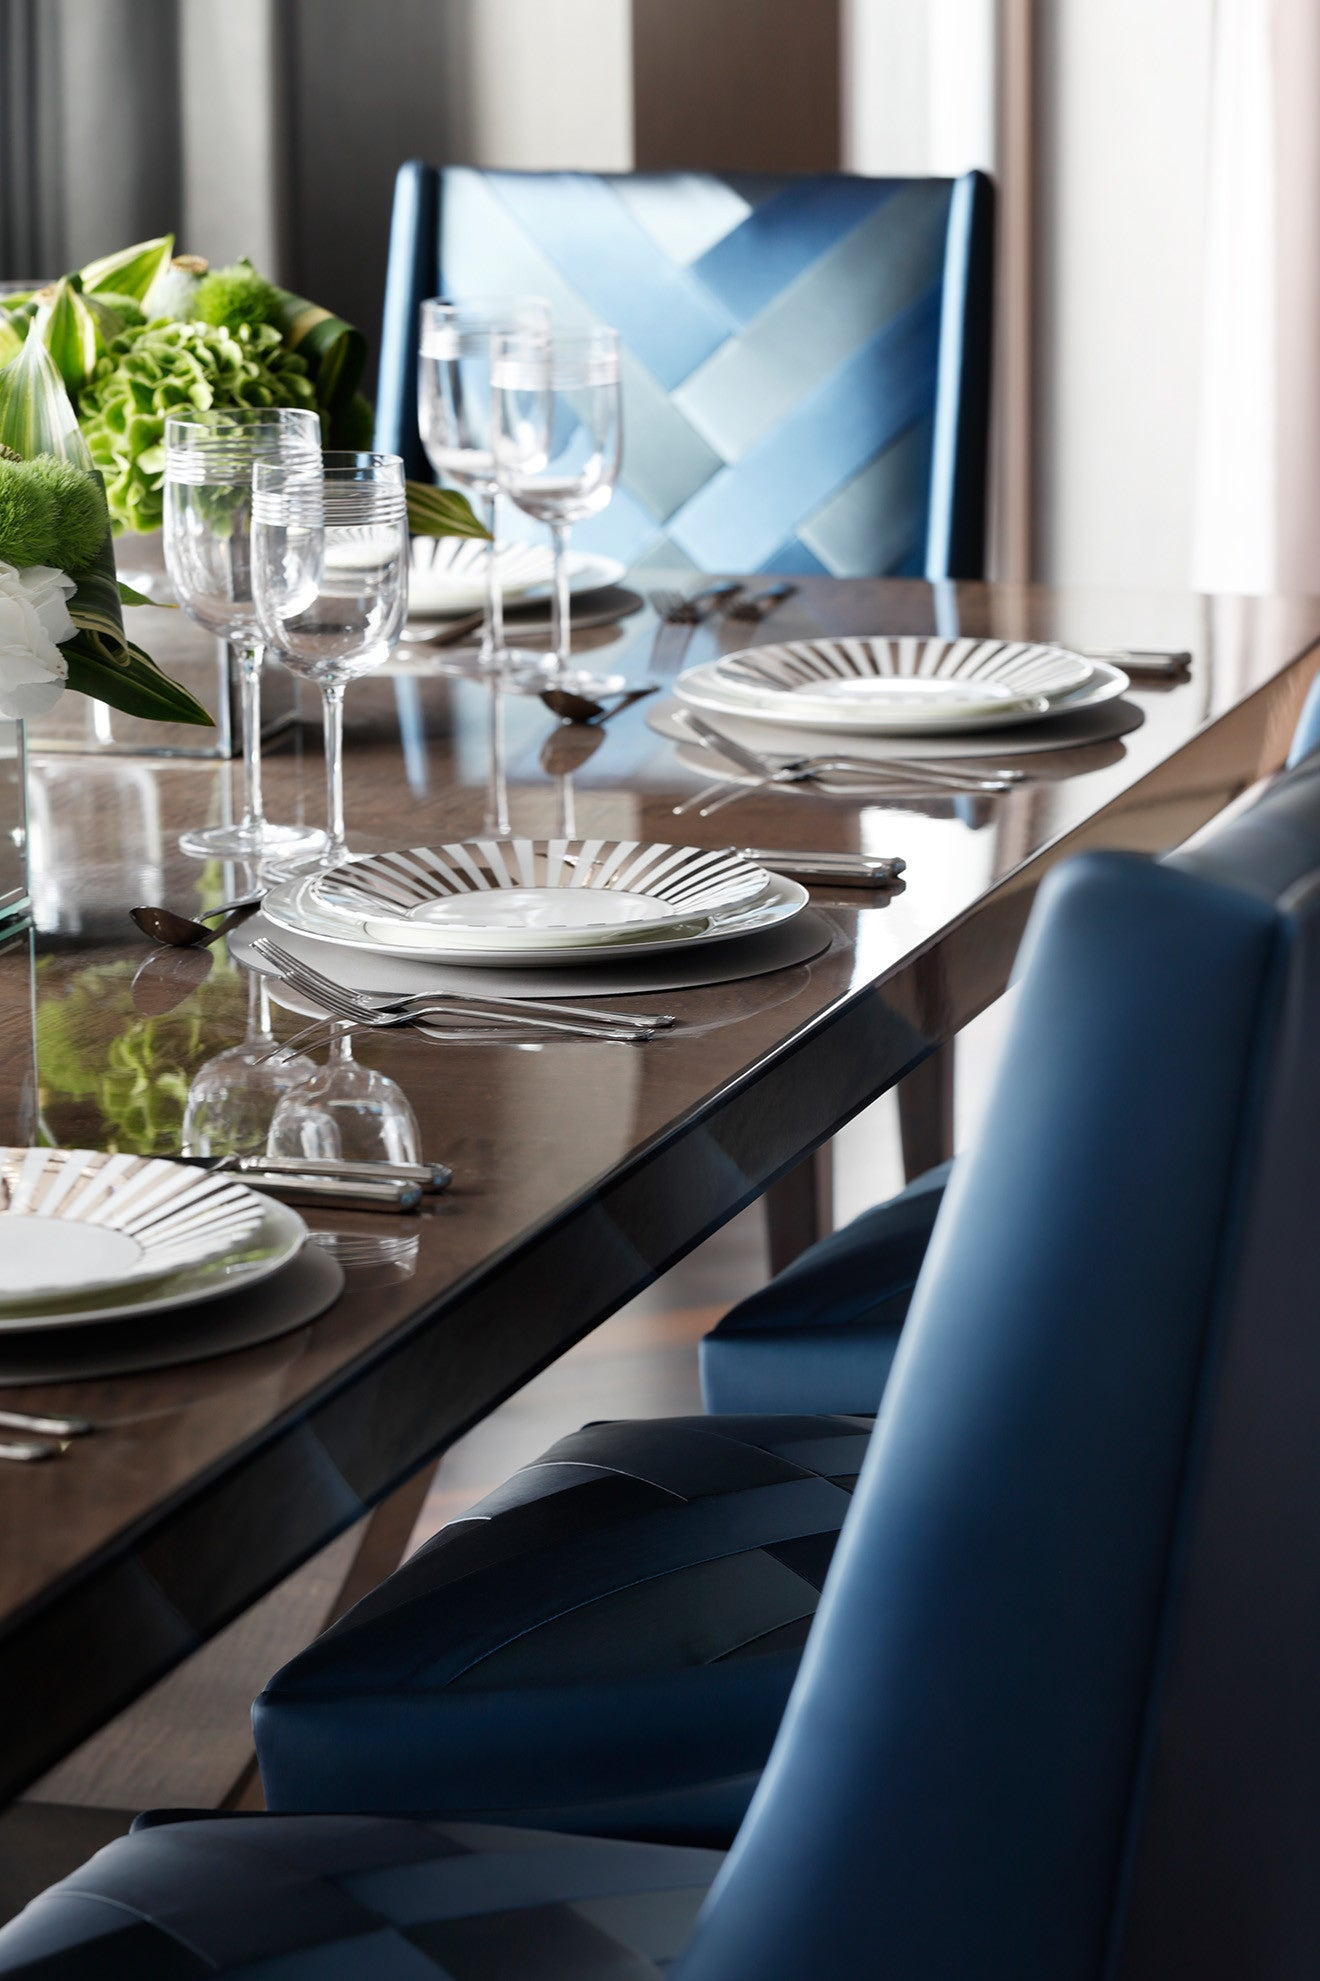 Luxury dining setting designed by Oliver Burns